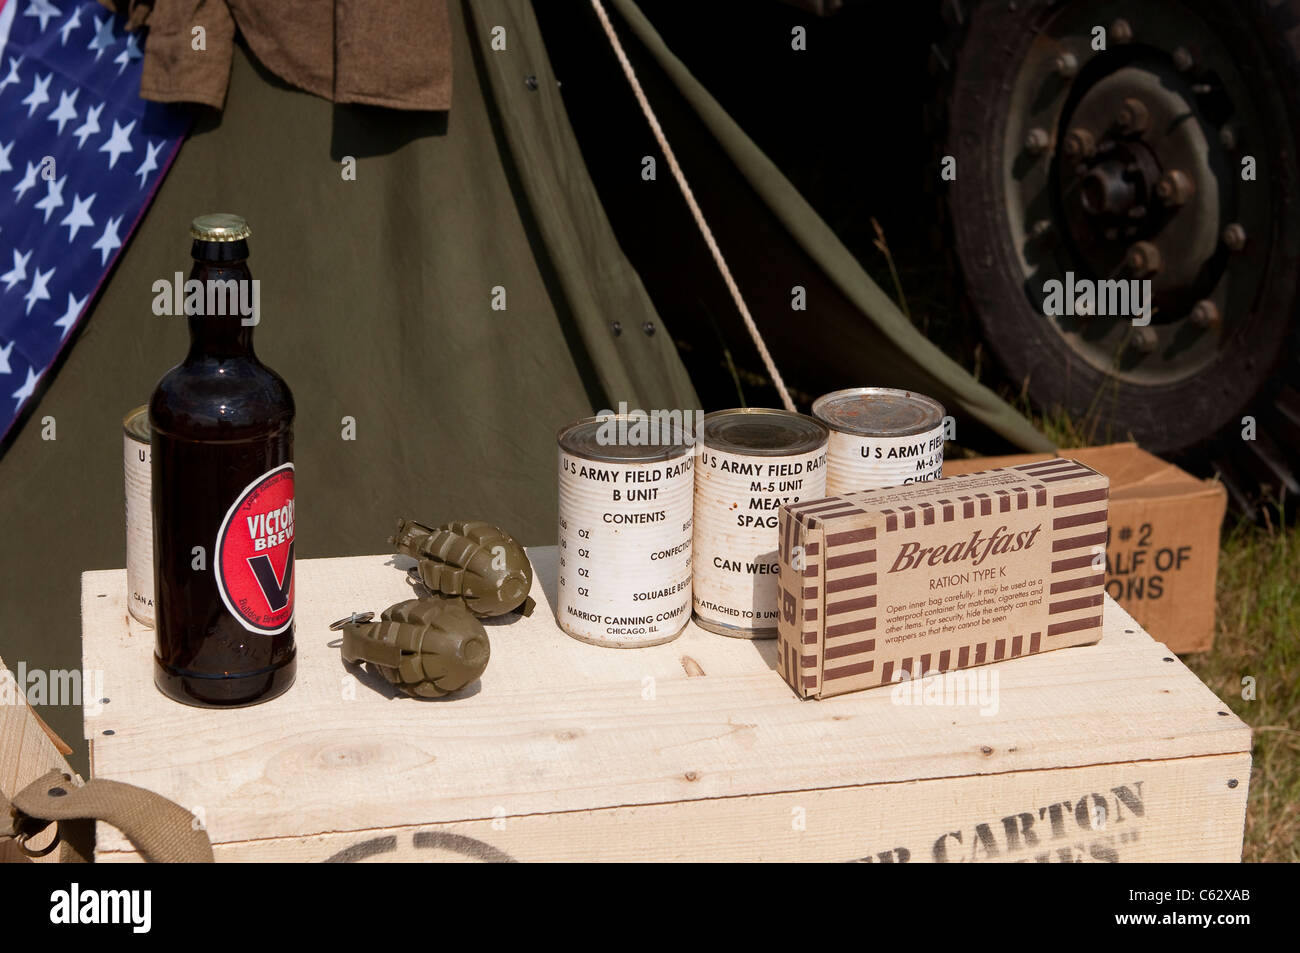 American military artefacts on display at an enthusiasts rally. - Stock Image